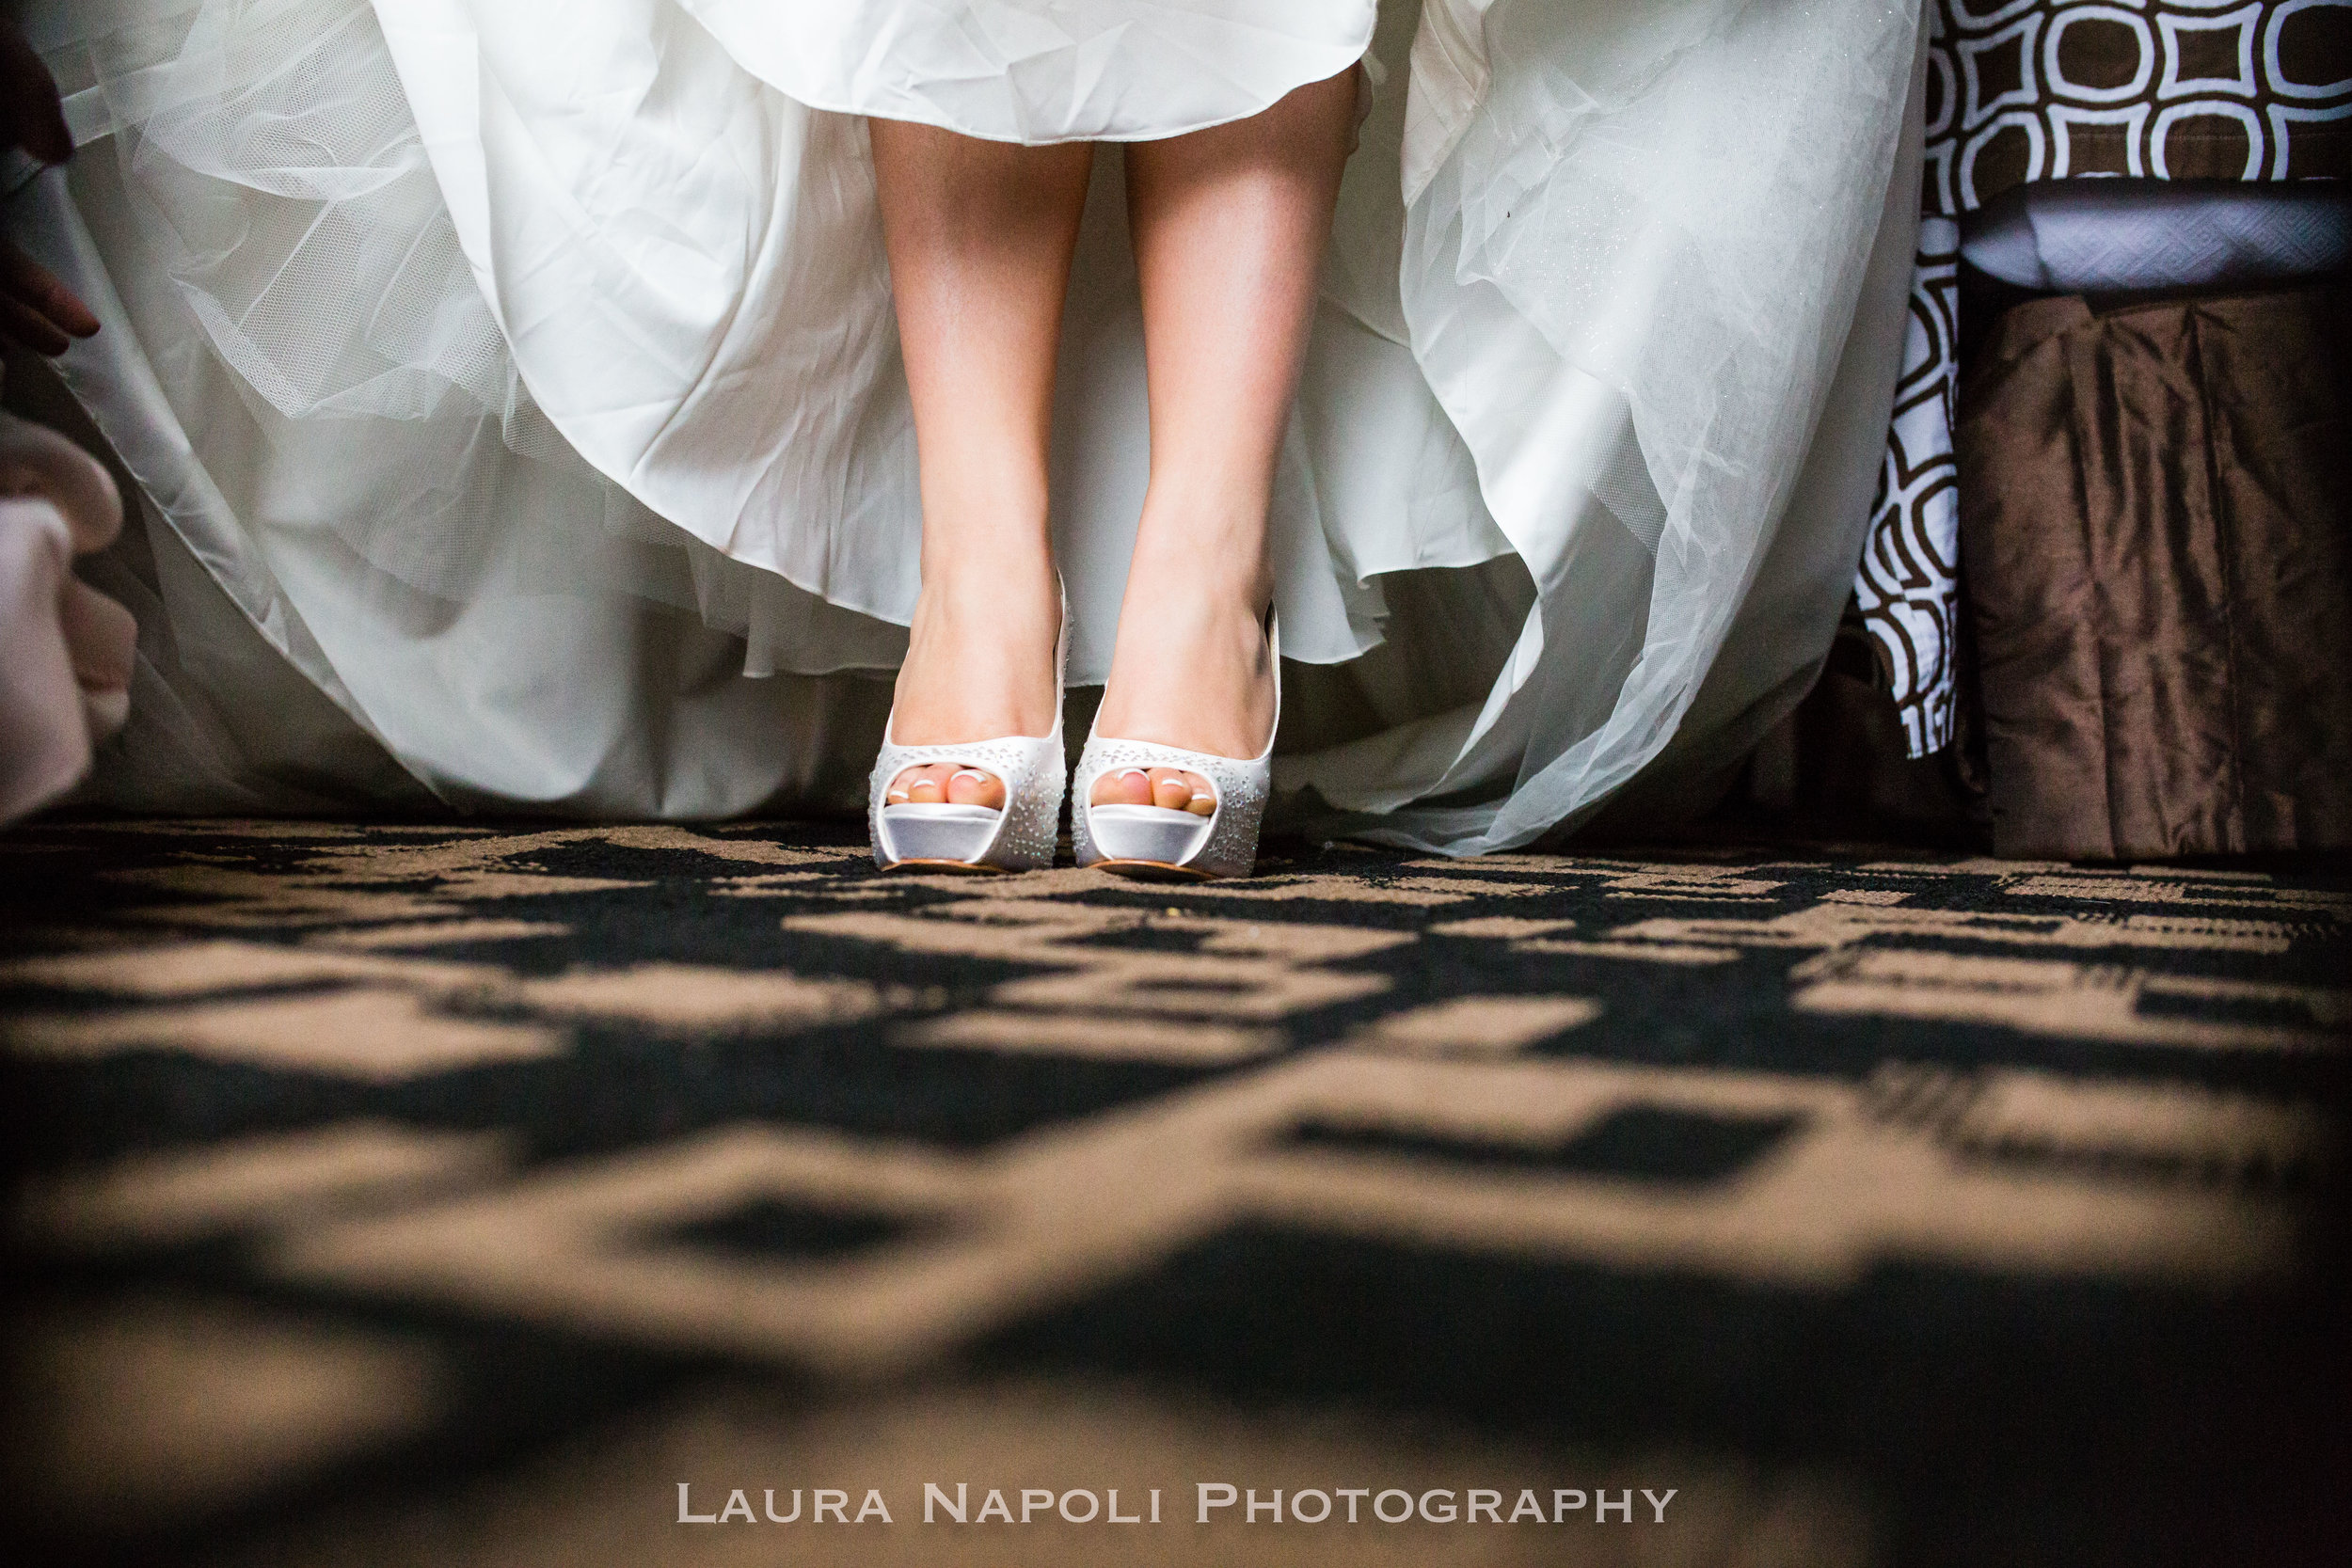 crowneplazacherryhillnjweddingphotographer-8.jpg